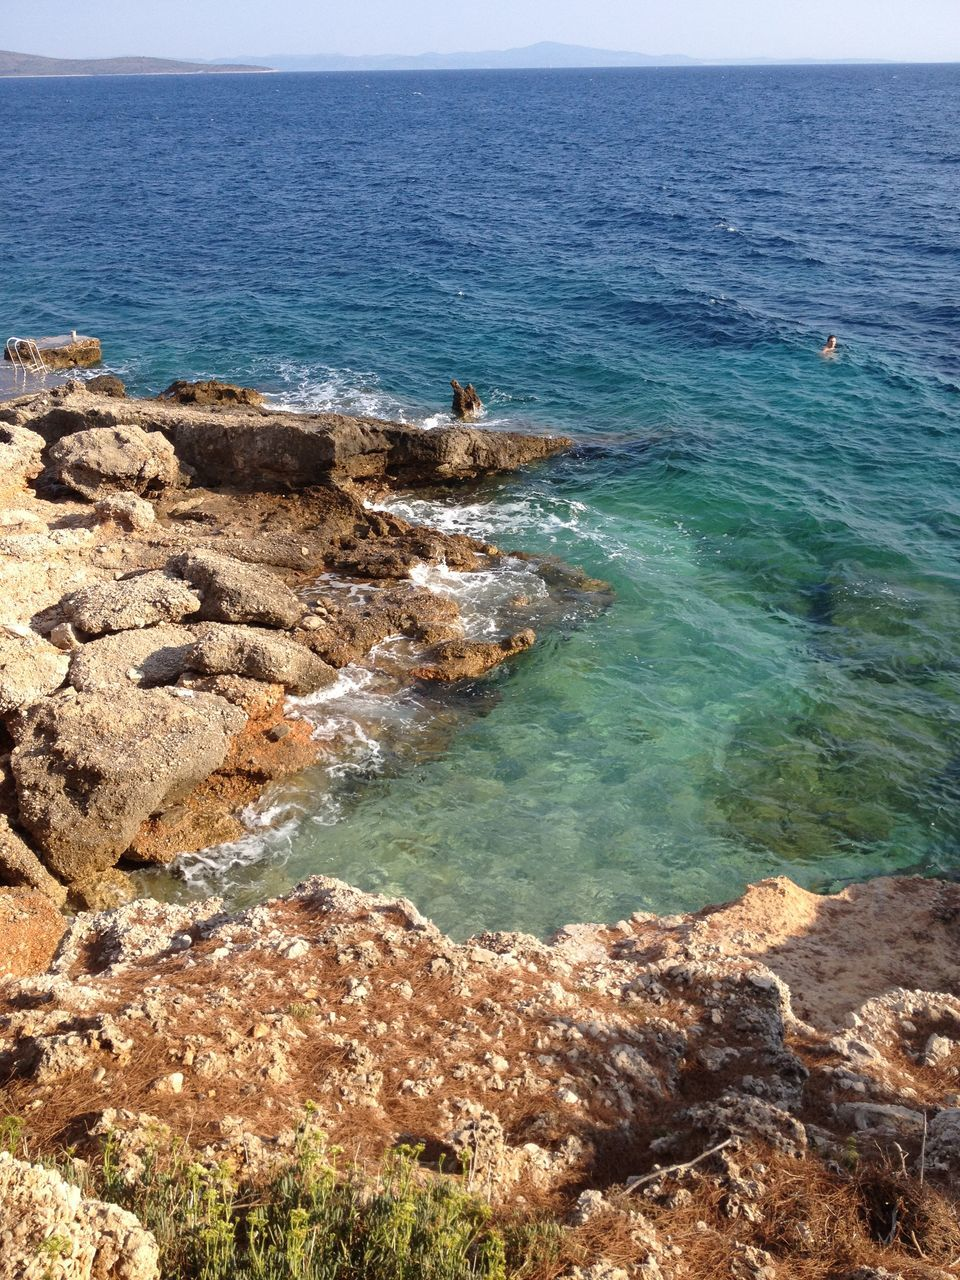 sea, water, horizon over water, beauty in nature, scenics, nature, tranquil scene, rock - object, tranquility, high angle view, day, outdoors, beach, real people, wave, blue, sky